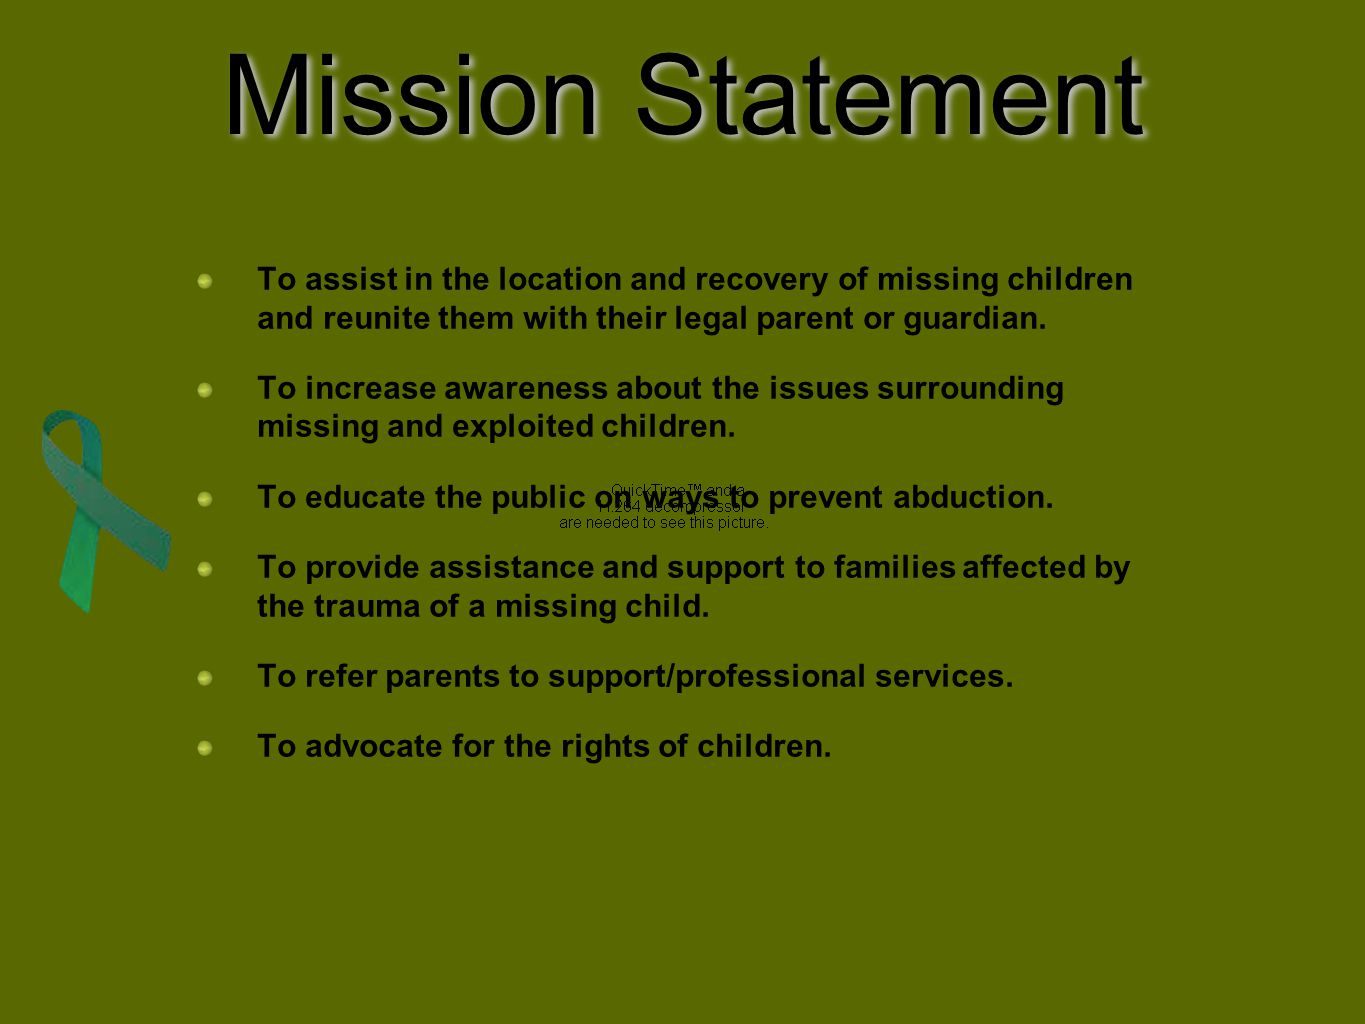 Mission Statement To assist in the location and recovery of missing children and reunite them with their legal parent or guardian.